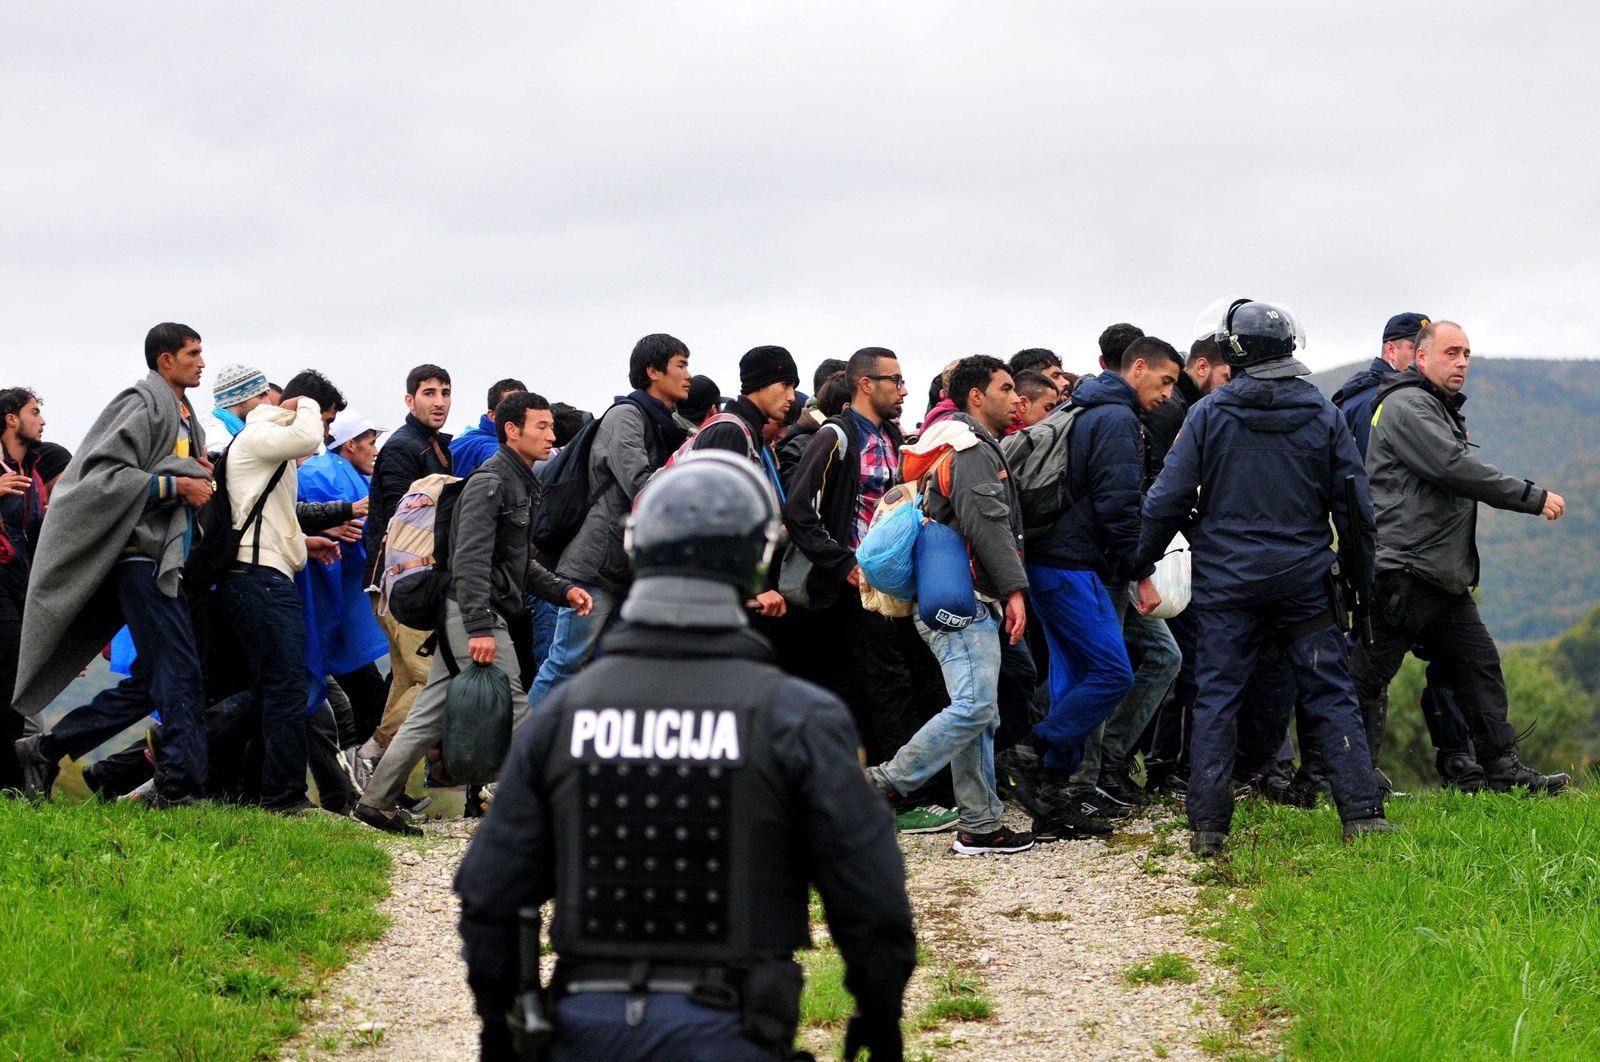 Migrants arrive in Slovenia after crossing the border with Croati